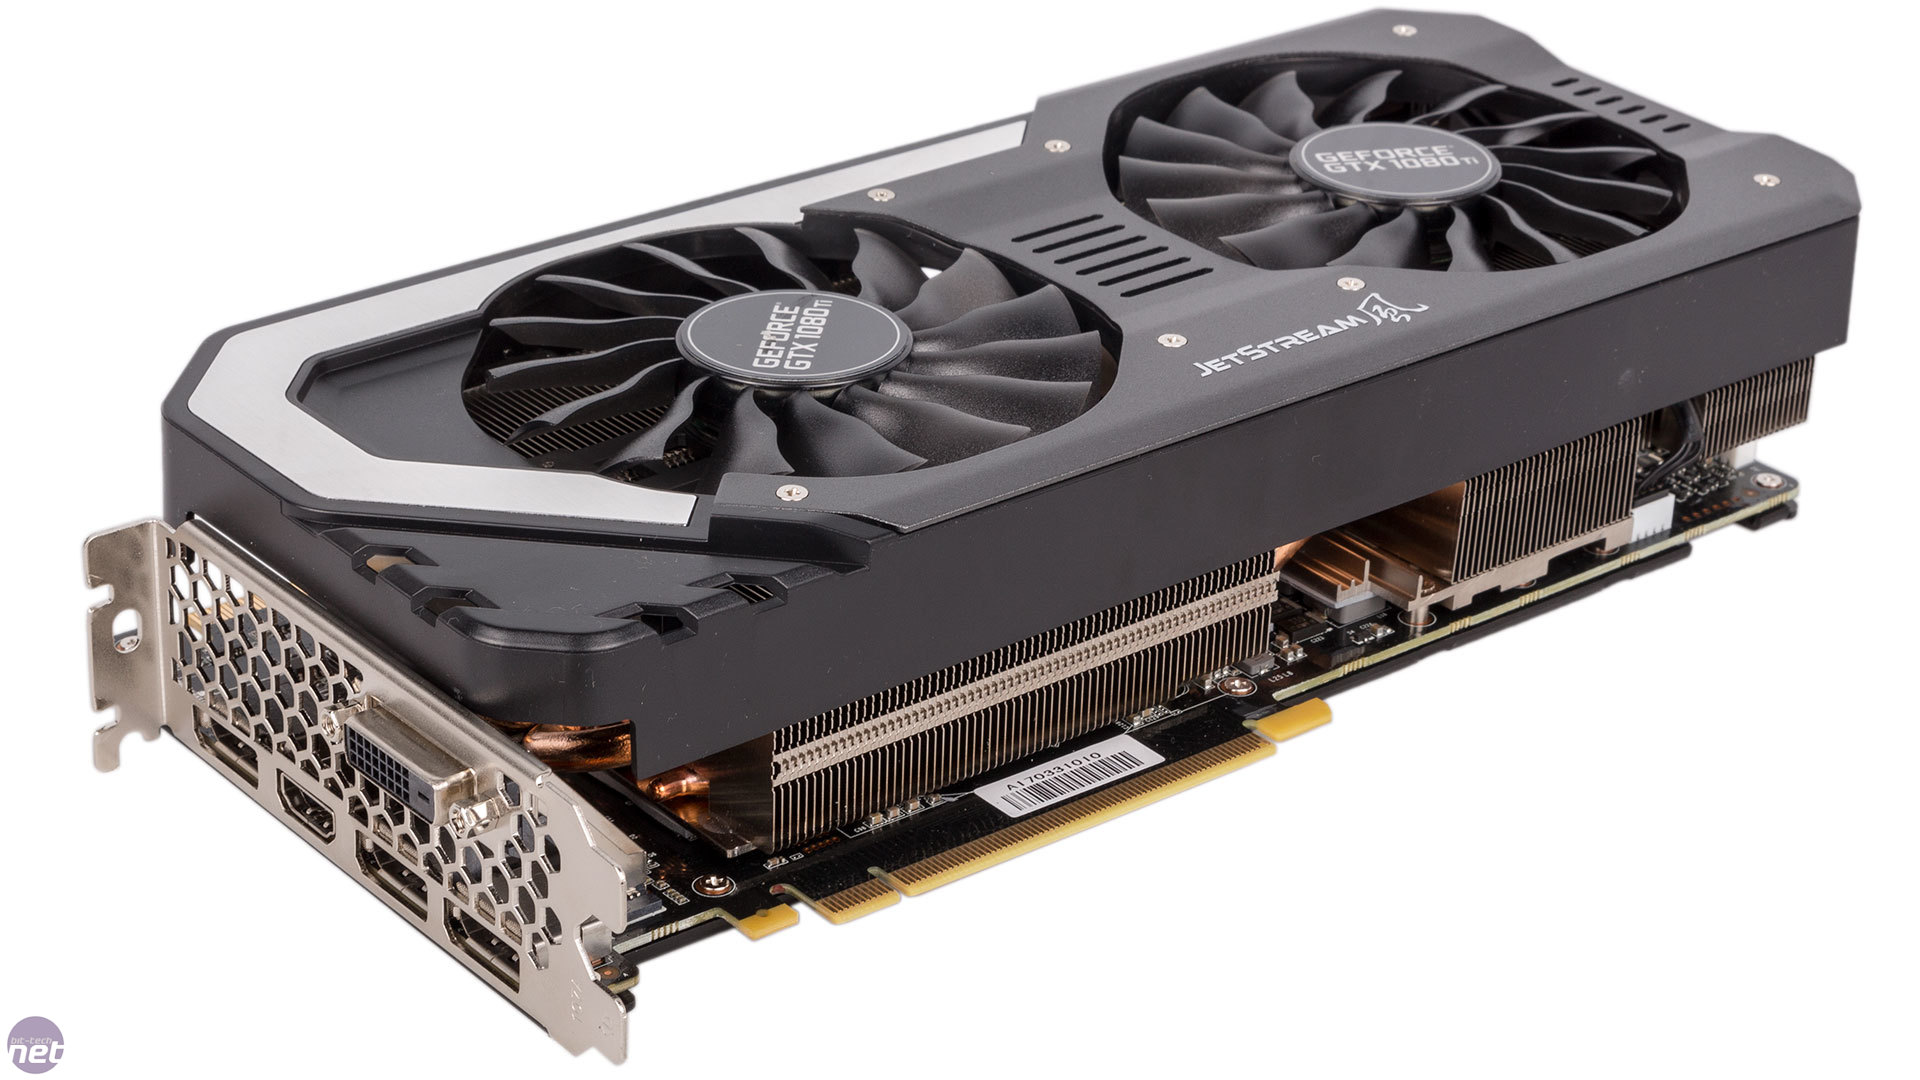 Palit GeForce GTX 1080 Ti Super JetStream Review | bit-tech net